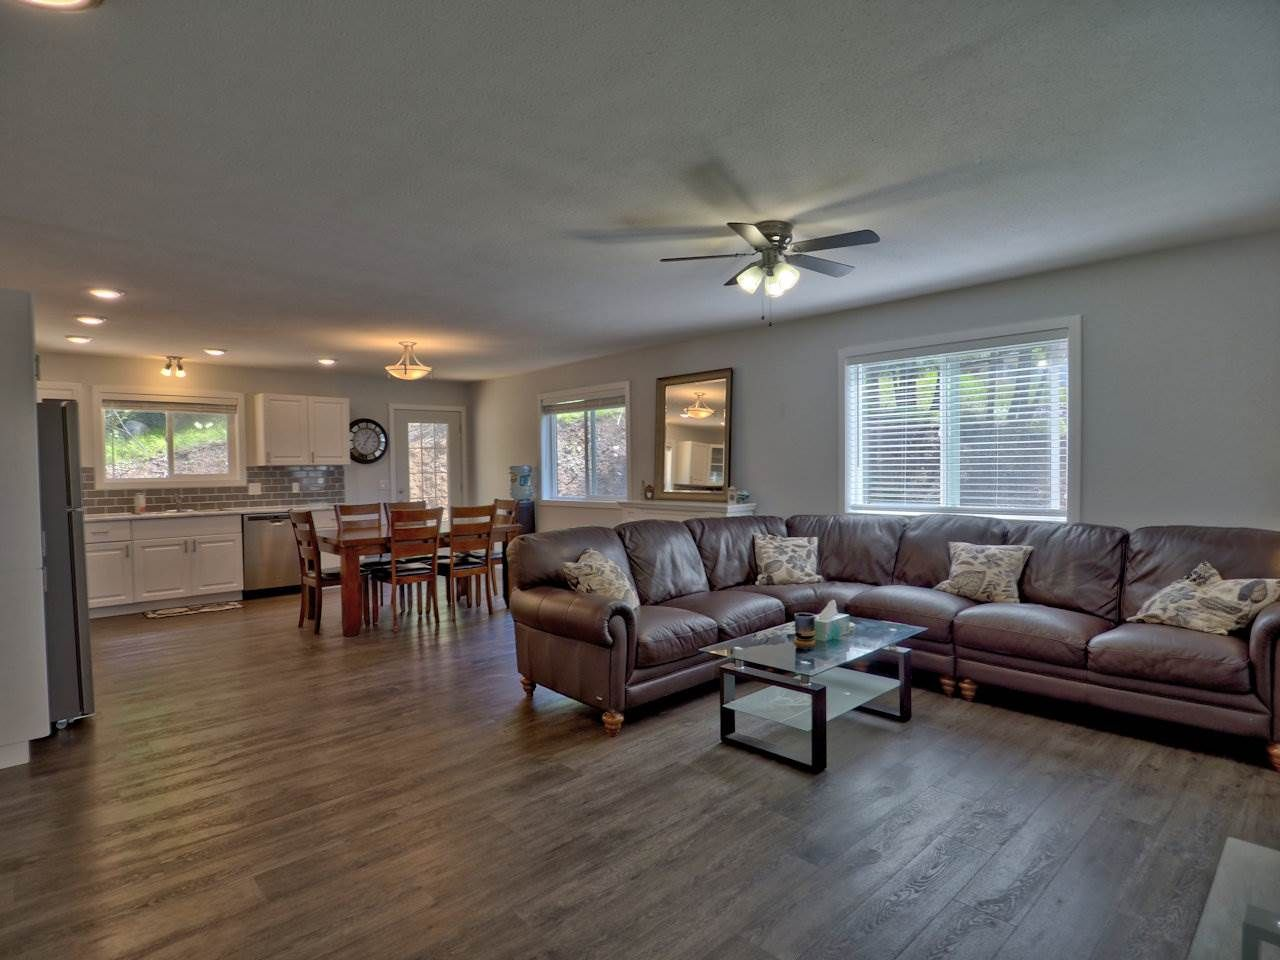 Photo 9: Photos: 4915 KITWANGA Drive in 108 Mile Ranch: 108 Ranch House for sale (100 Mile House (Zone 10))  : MLS®# R2481177